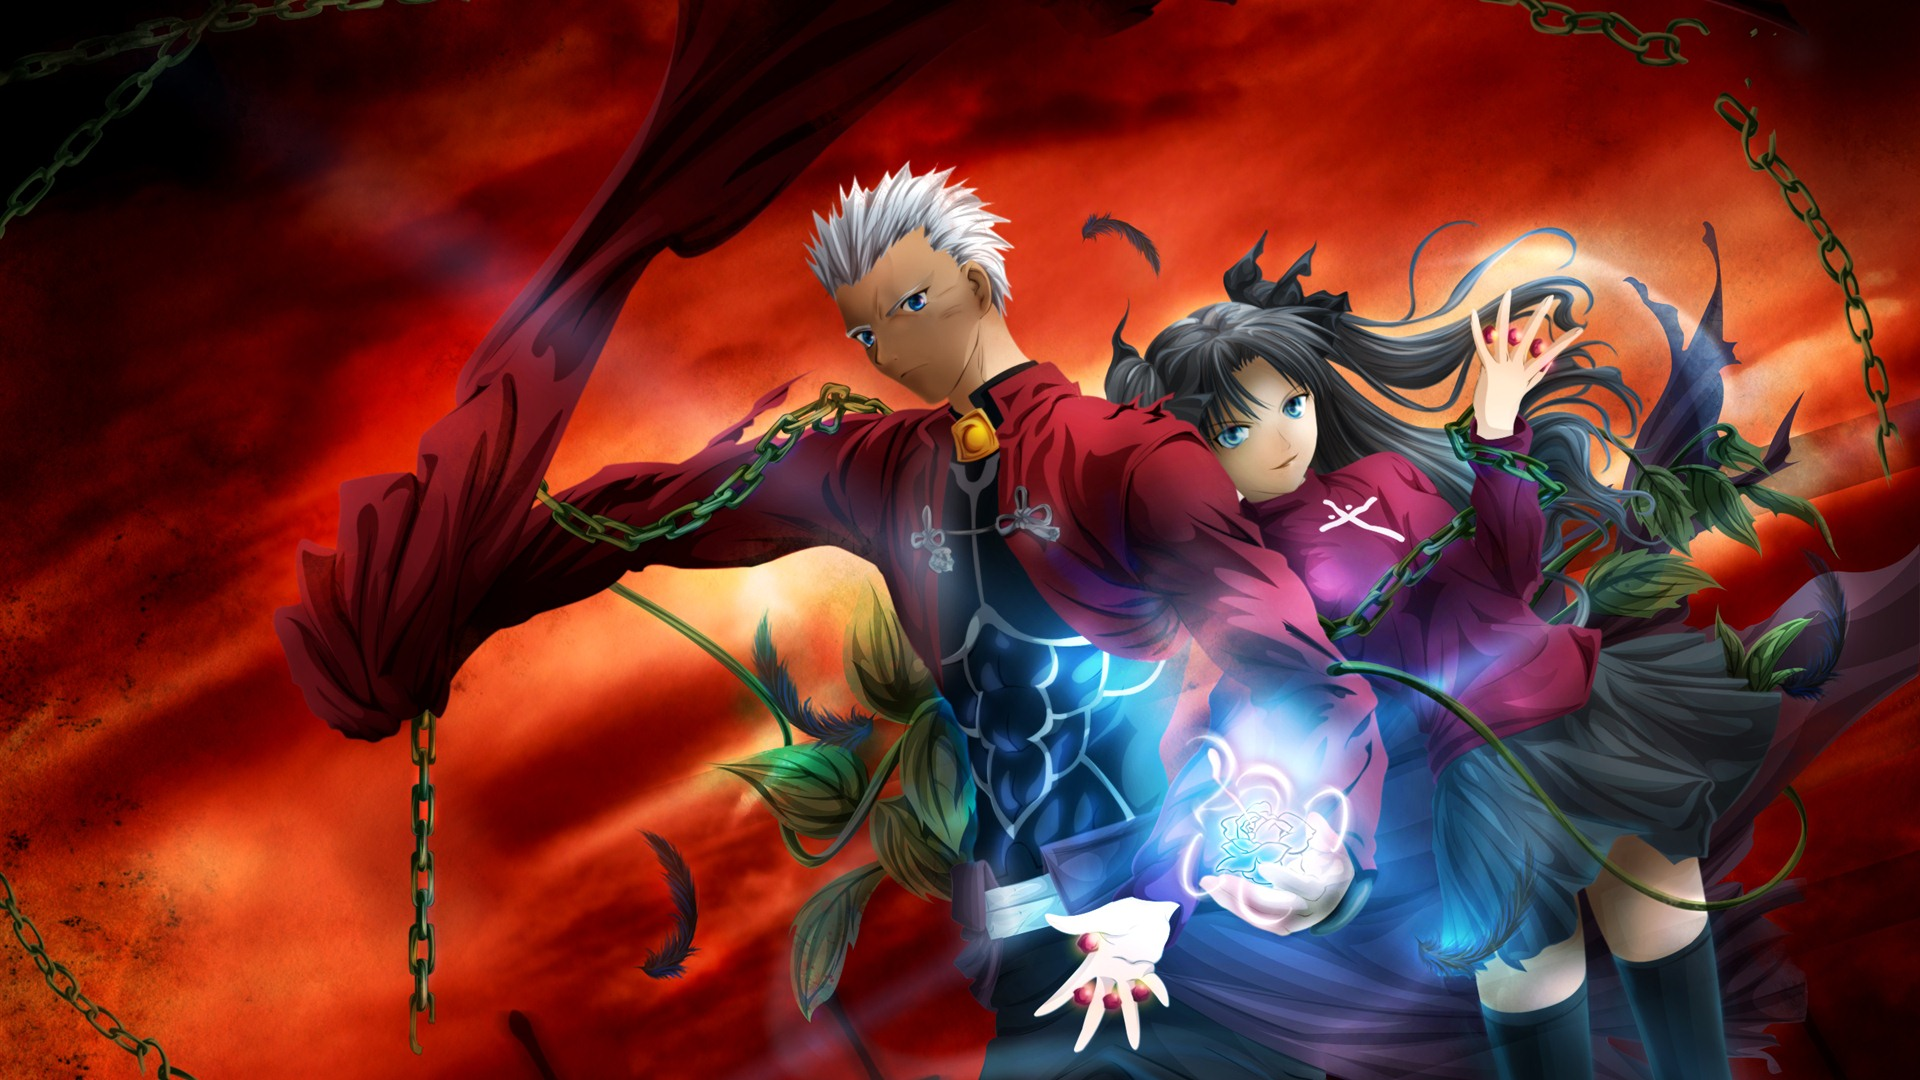 Fate Stay Night Hd Wallpapers 2 1920x1080 Wallpaper Download